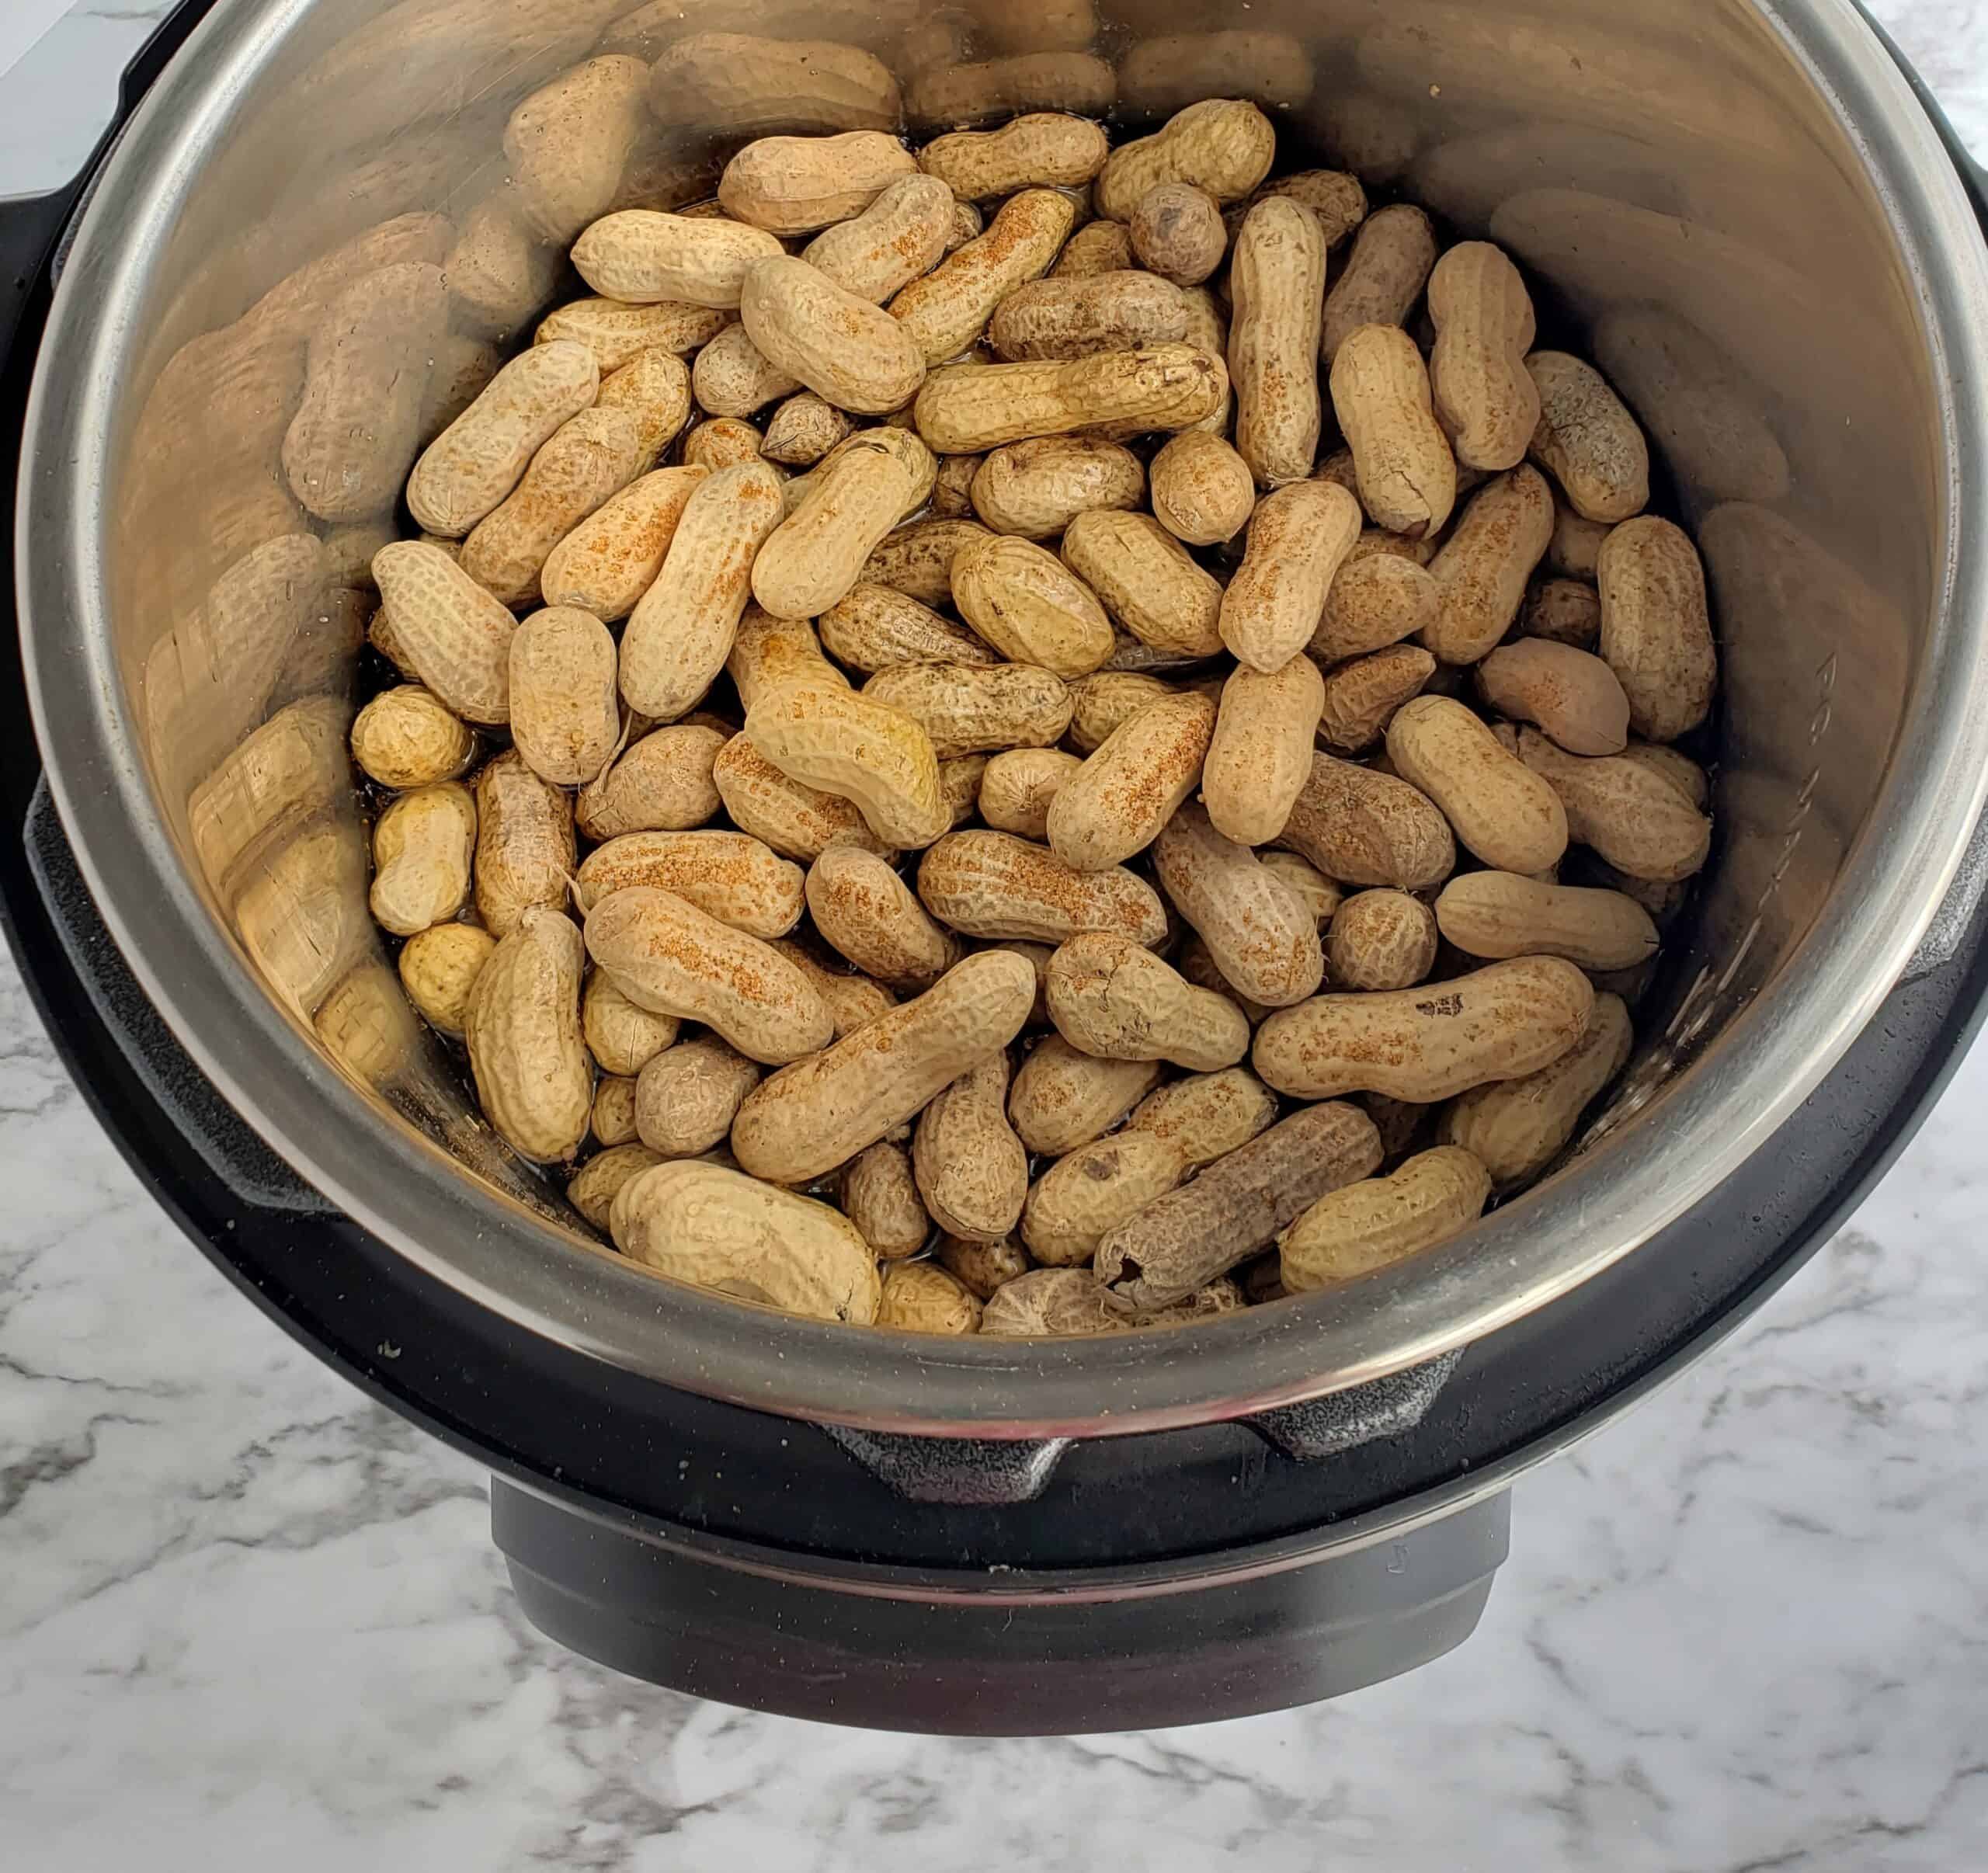 For boiled peanuts add one pound raw peanuts, 1/4 cup salt and 6 cups water to the 6 quart Instant Pot. Add Tony Cacheres creole seasoning to the Instant Pot f desired